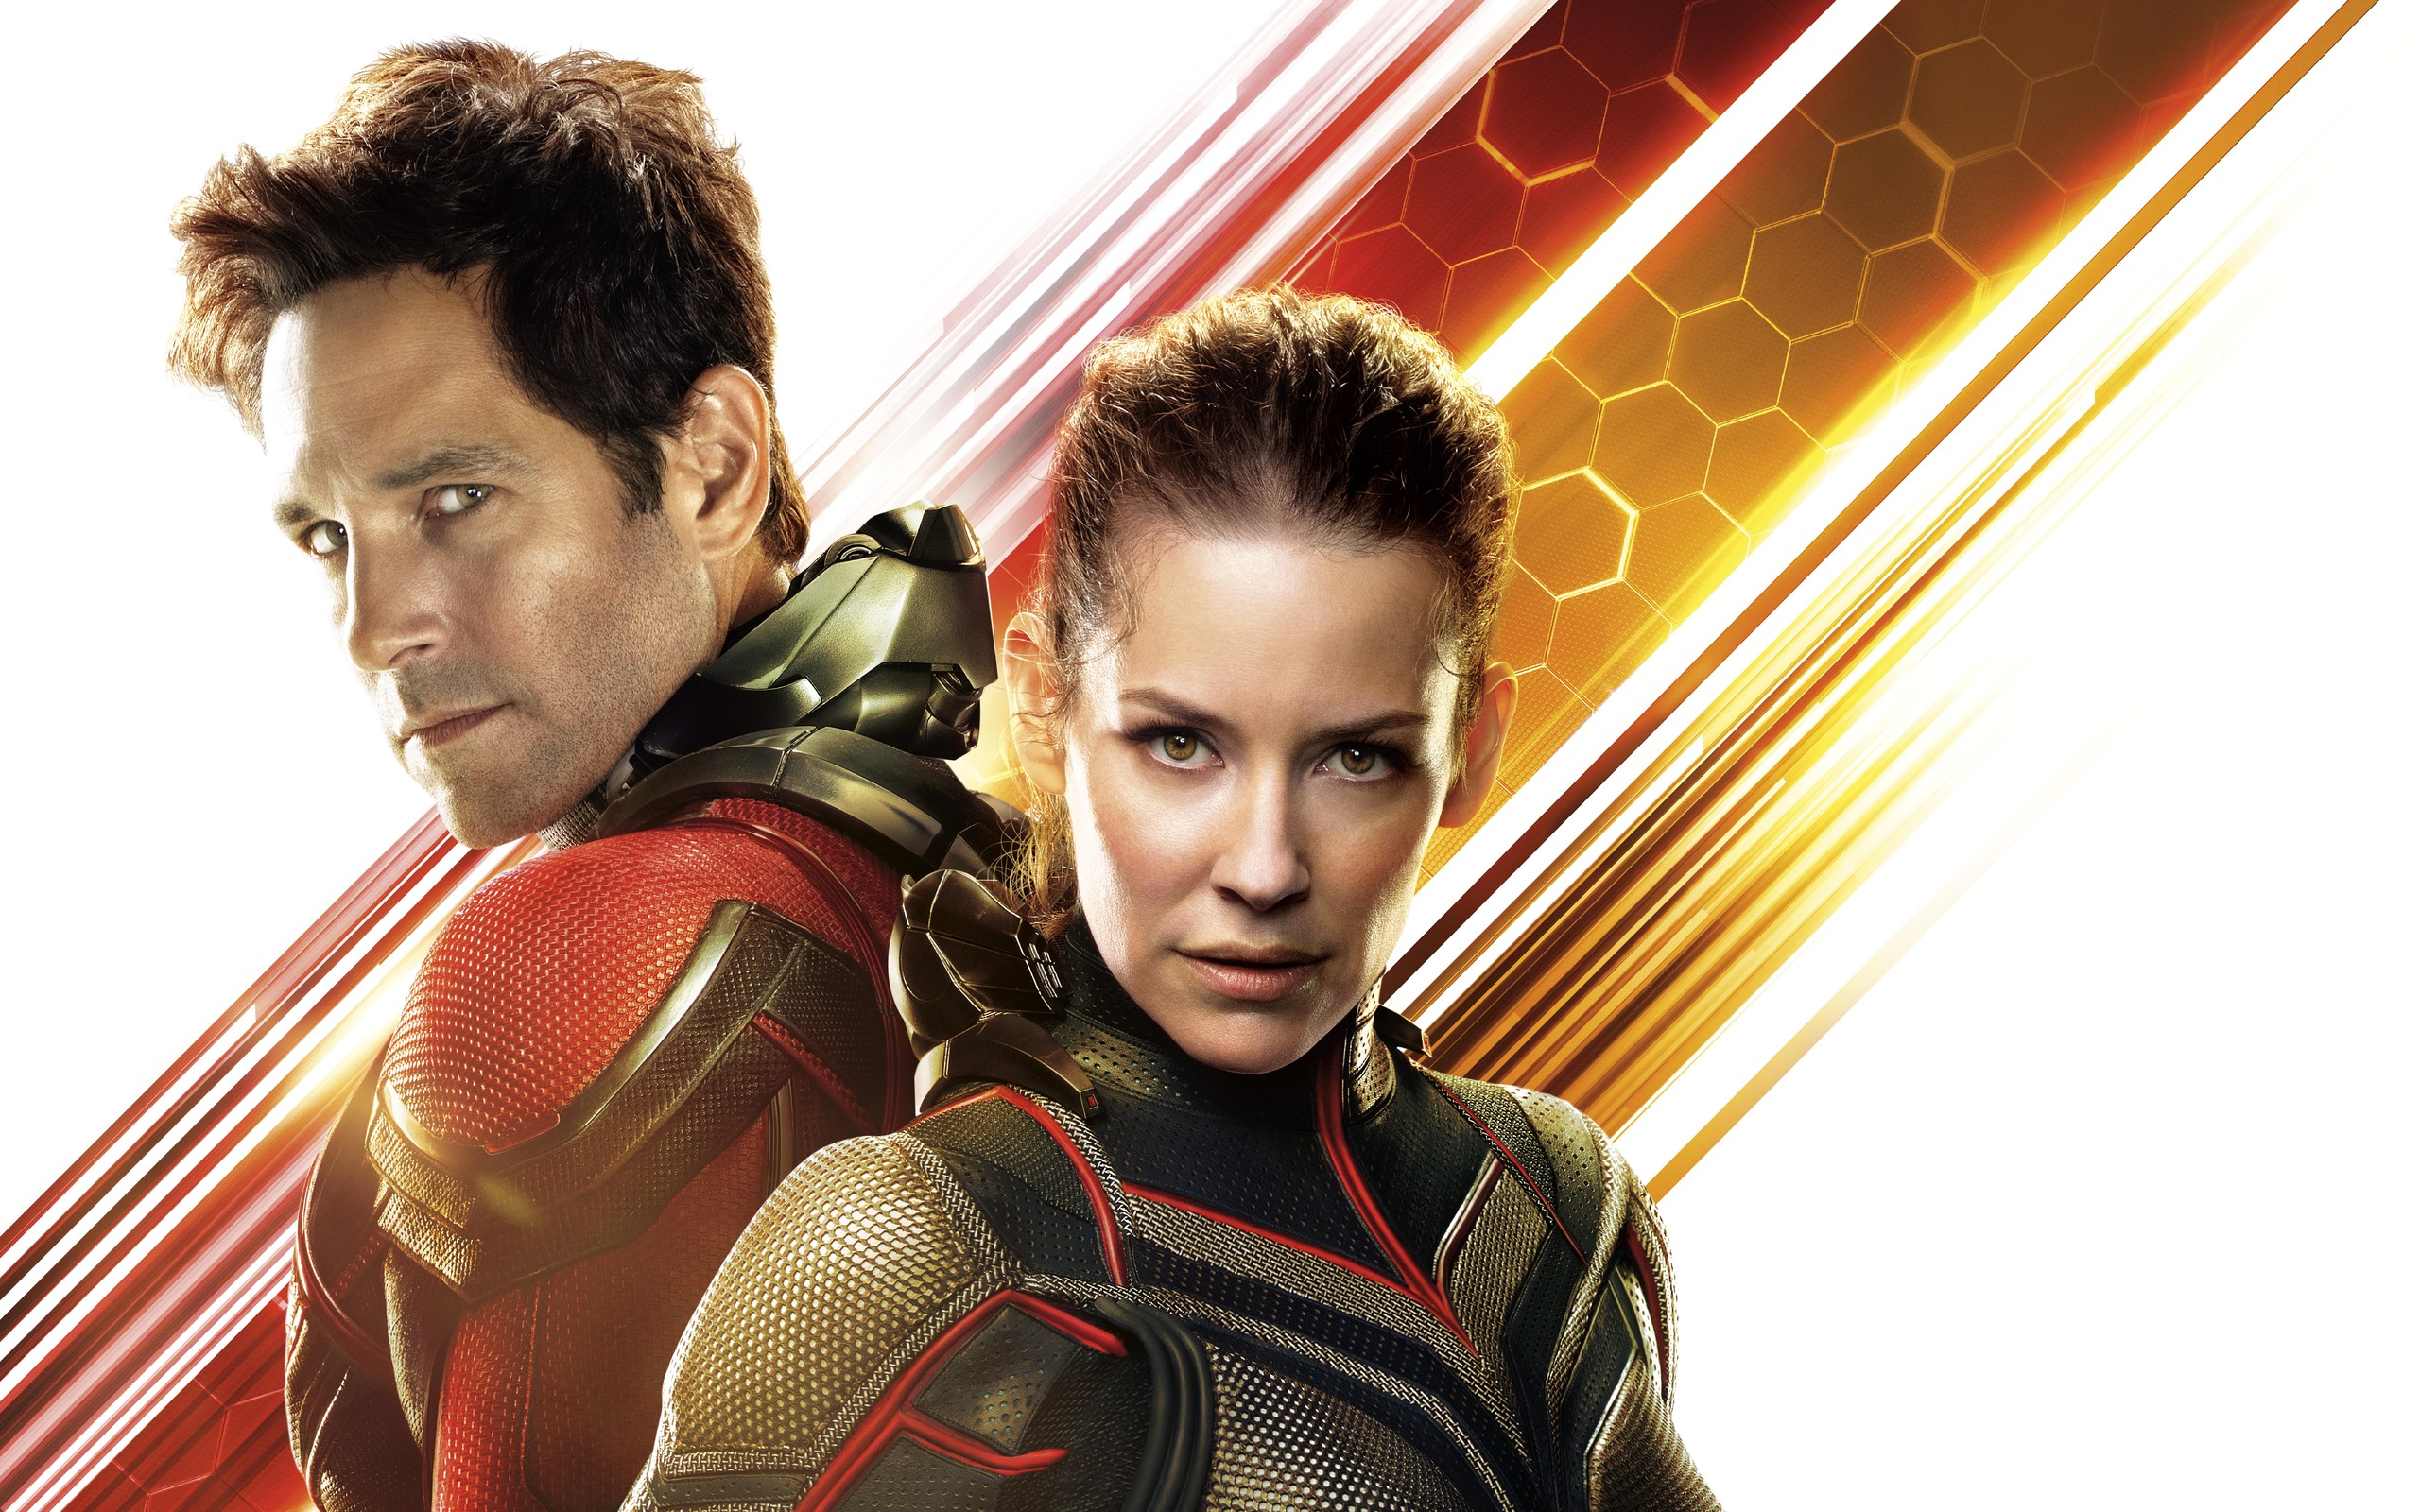 ant-man-and-the-wasp-movie-12k-5j.jpg